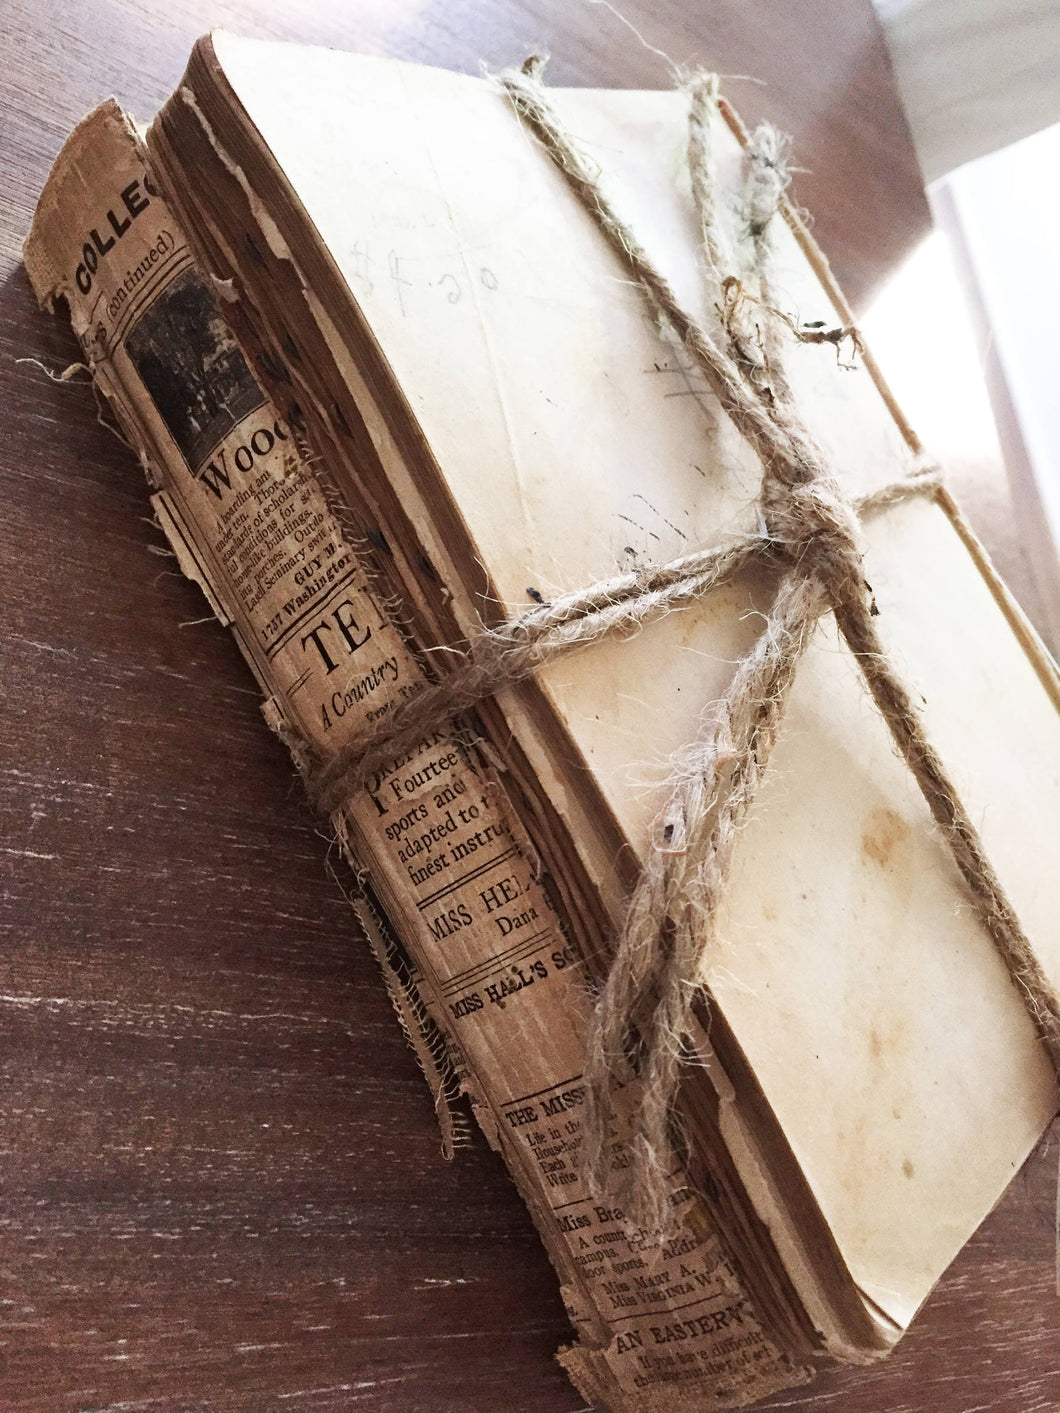 Vintage decor books antique display books bookshelf decor rustic bookshelves styling